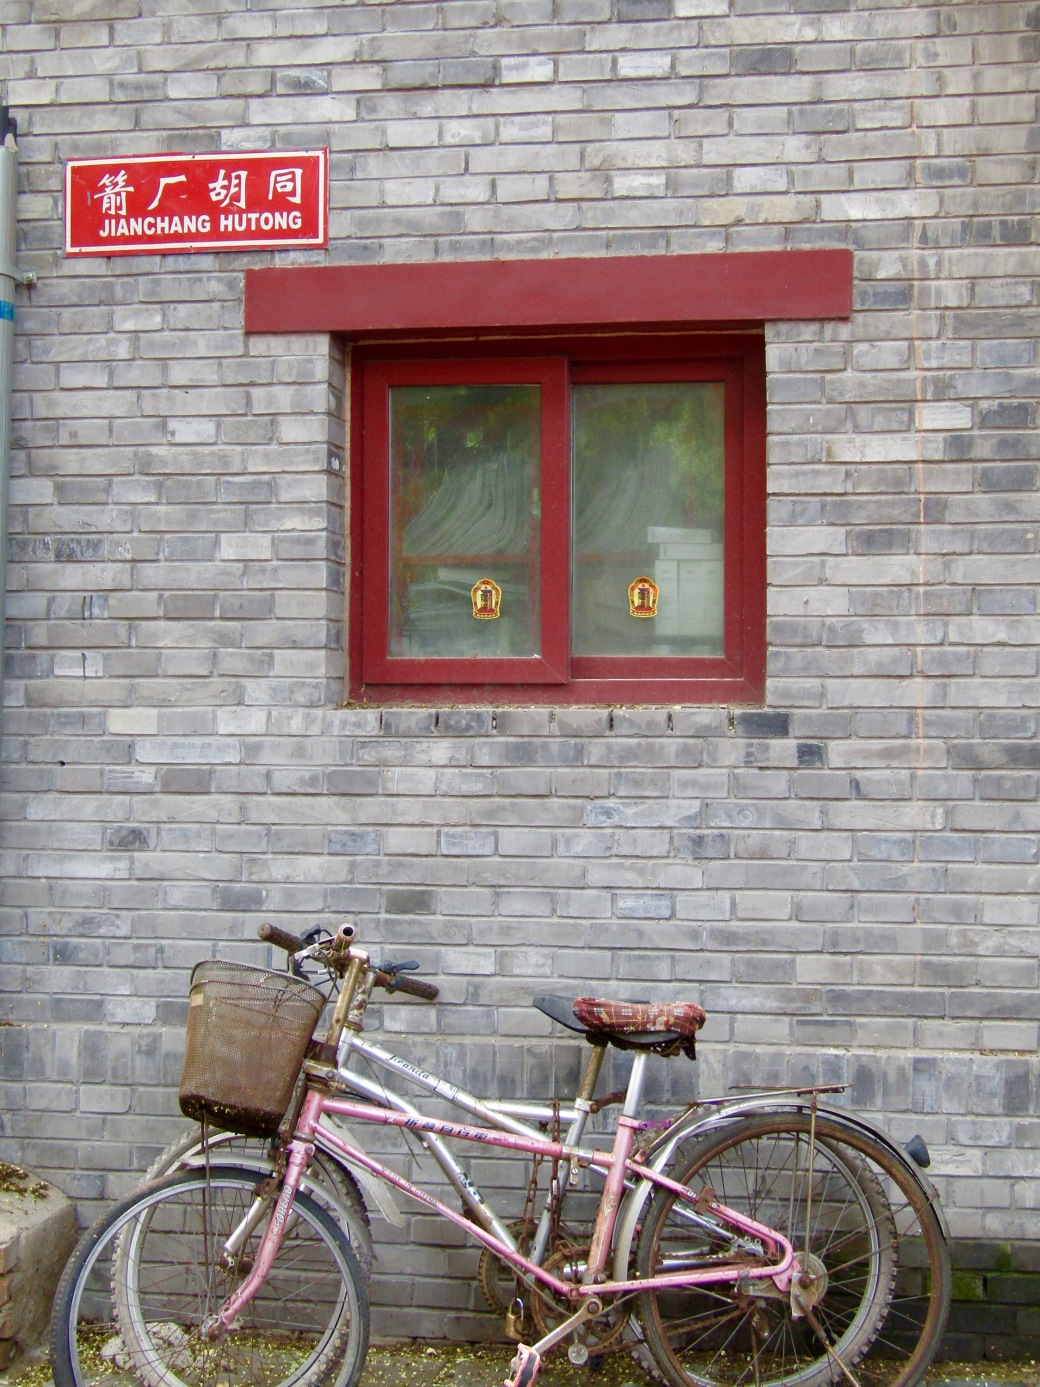 One of the many character-filled hutongs (alleyways) of Beijing.